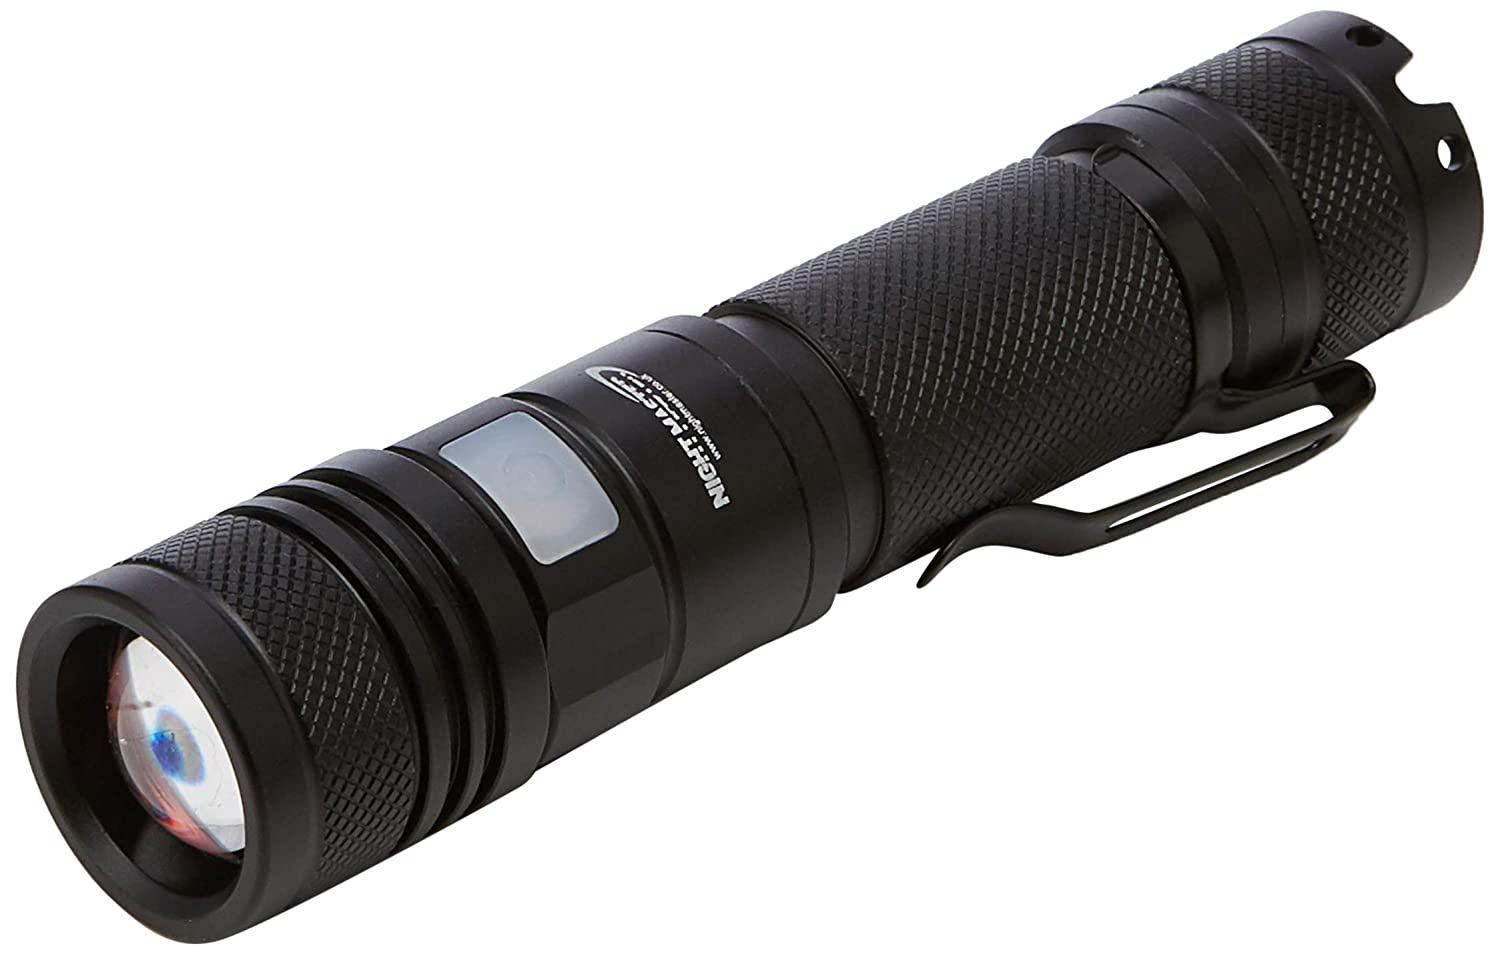 Black Night Master Unisexs Nmr-30 is an Everyday Picking Up Torch 125mm